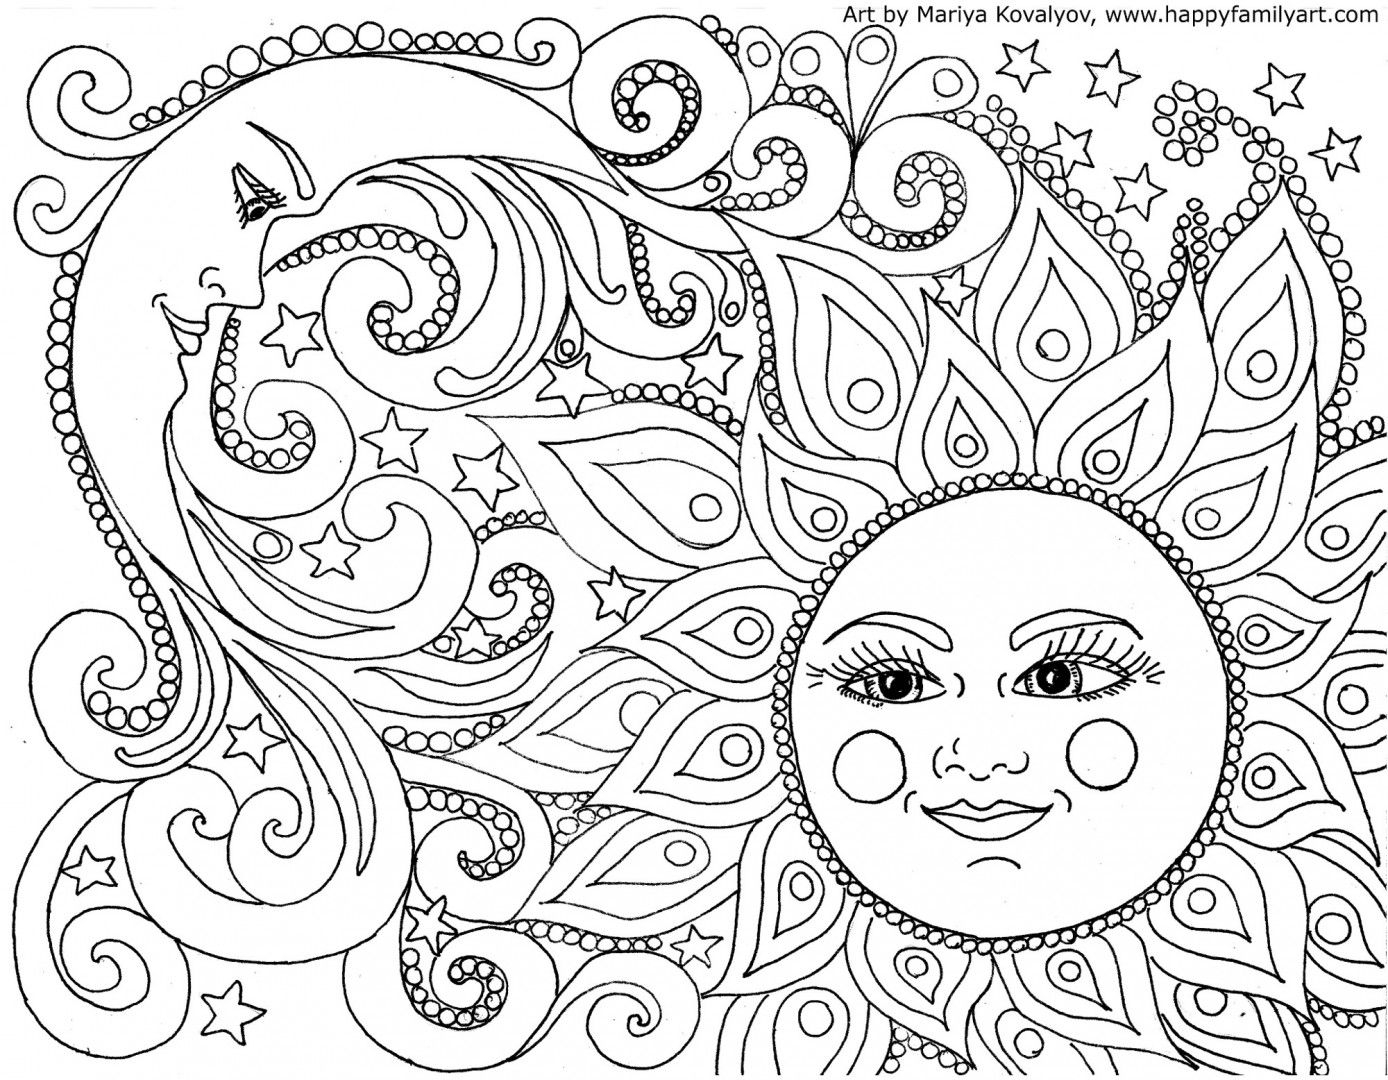 Colorama Coloring Pages  Download 9s - To print for your project